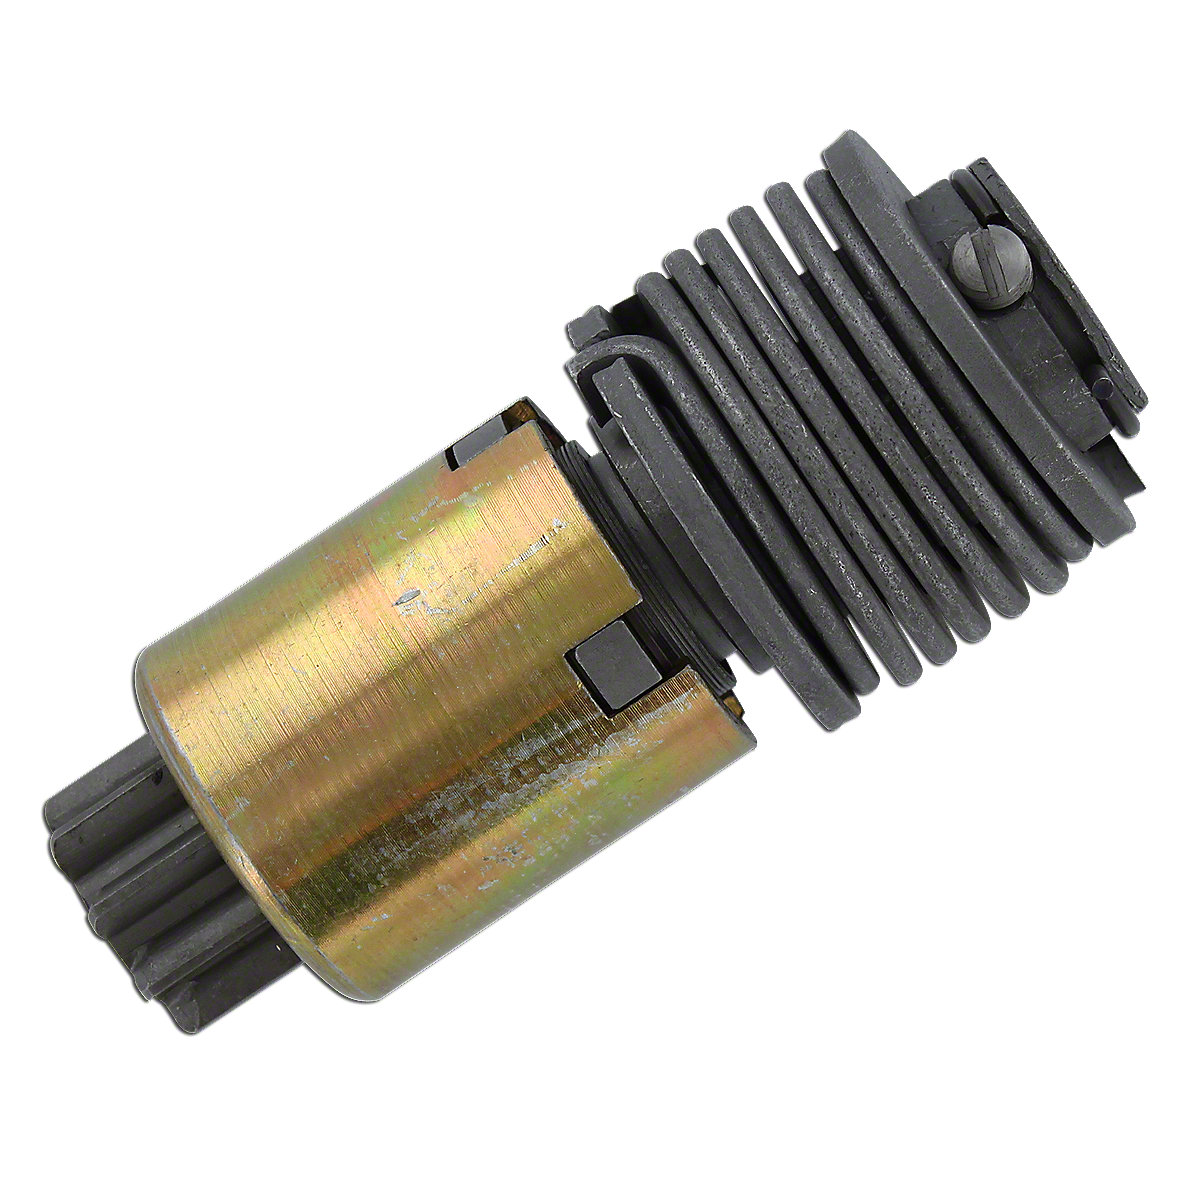 Spring Style Starter Drive For Massey Ferguson: TO20, TO30, TO35, 202, 204, 65, 40, 50, 35, Massey Harris: 50.